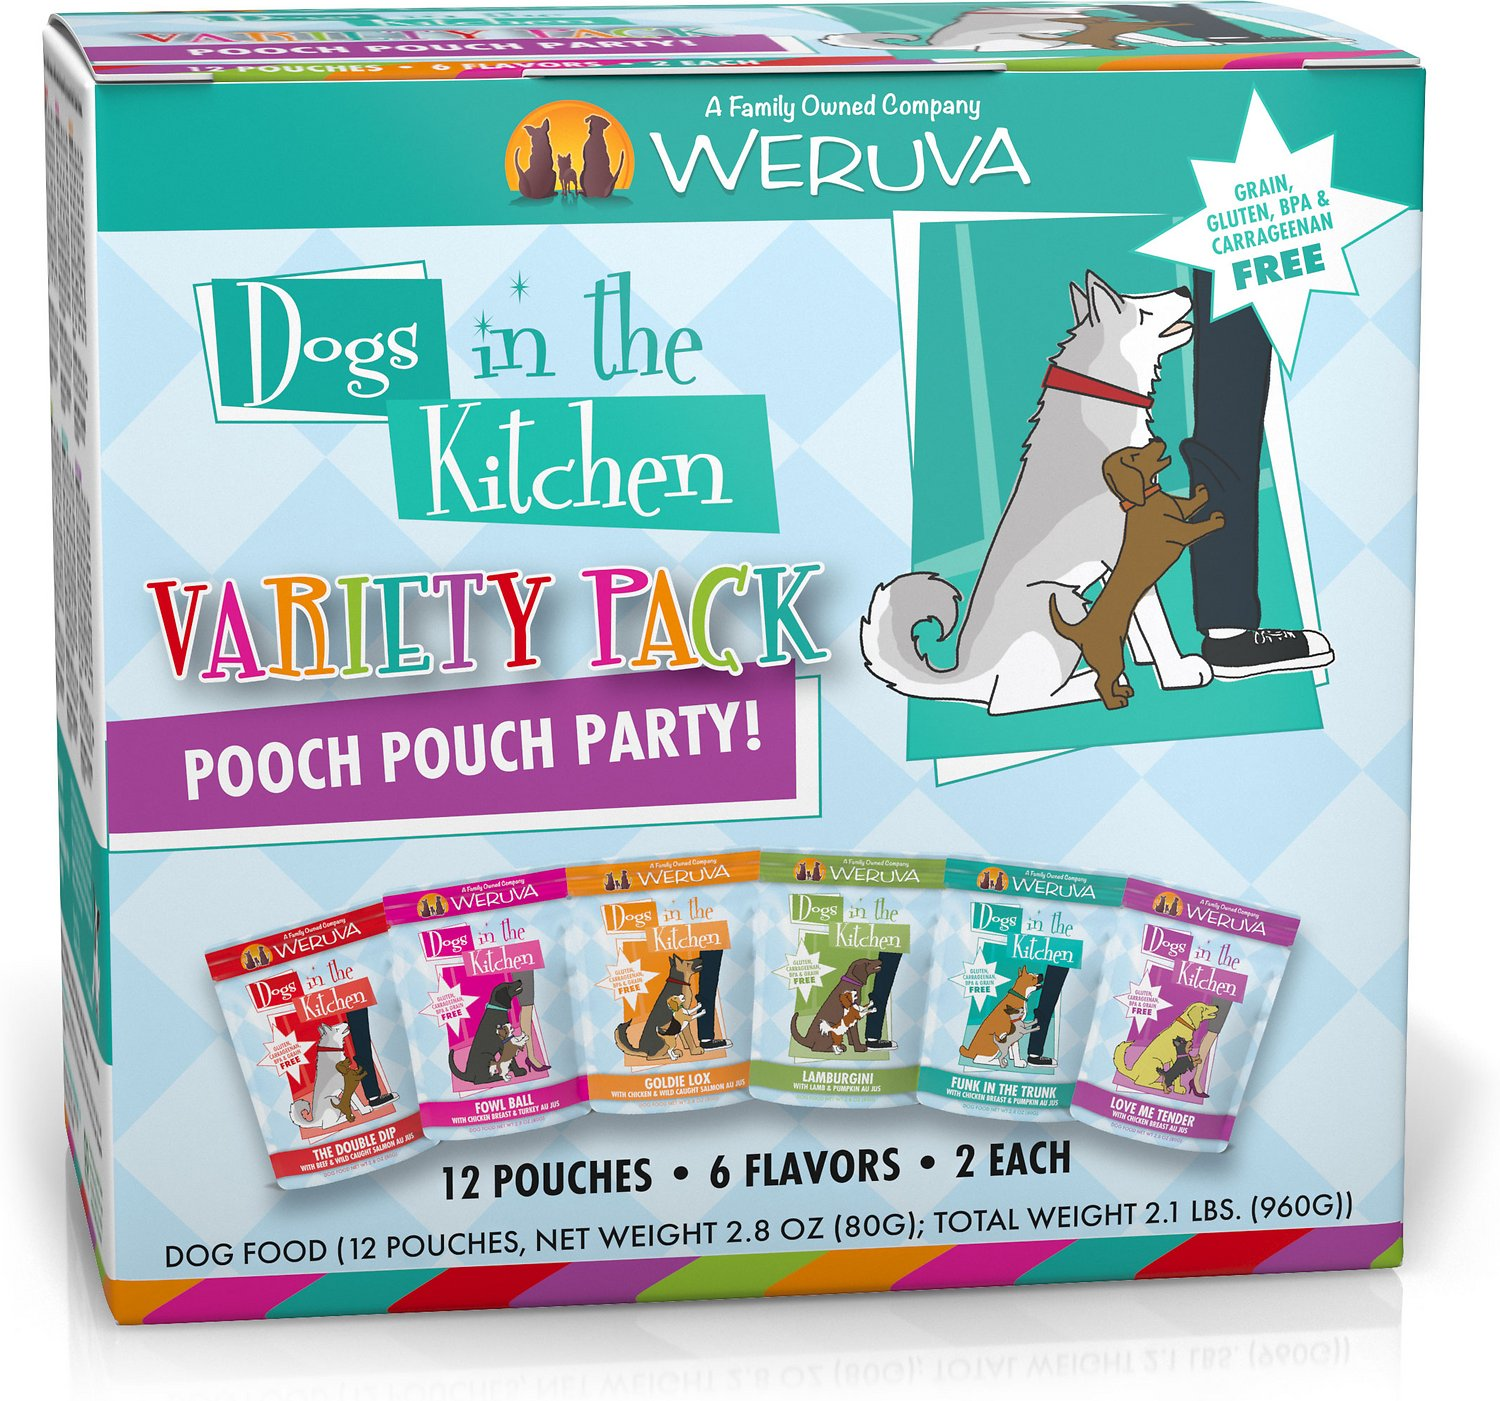 Weruva Dogs in the Kitchen Pooch Pouch Party! Variety Pack Grain-Free Dog Food Pouches, 2.8-oz, pack of 12